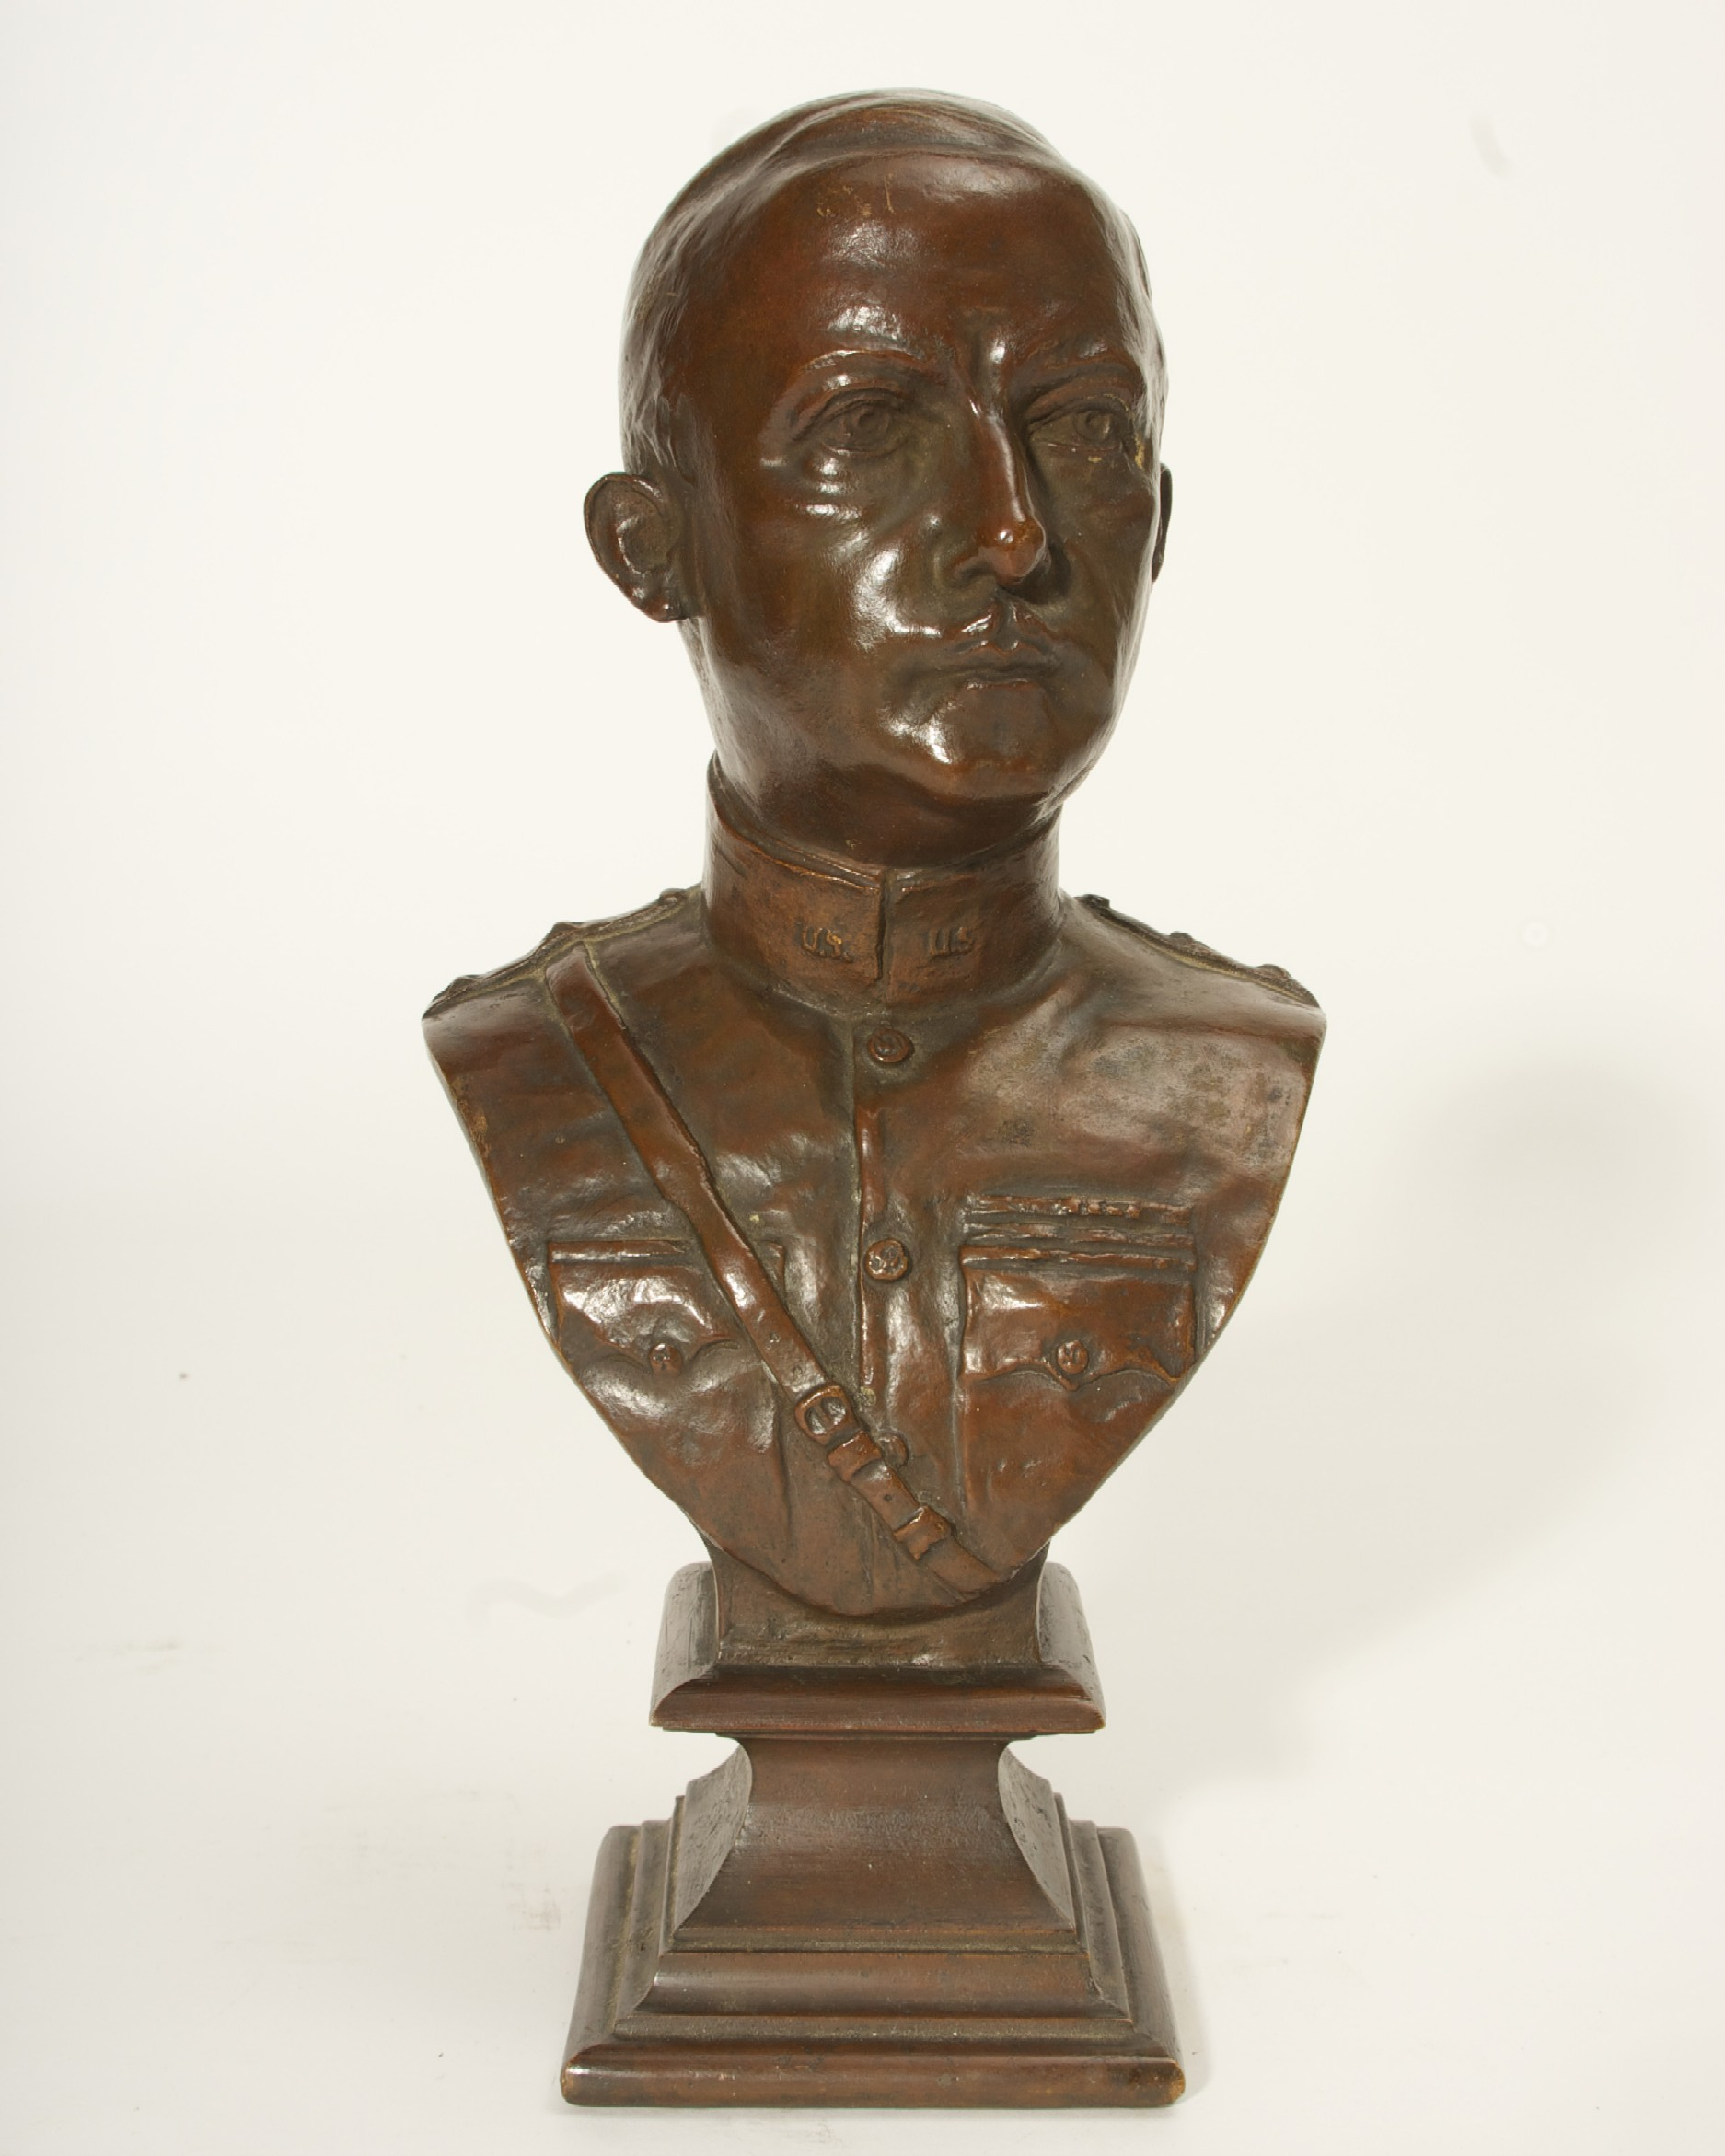 Major General John Francis O'Ryan, Bust